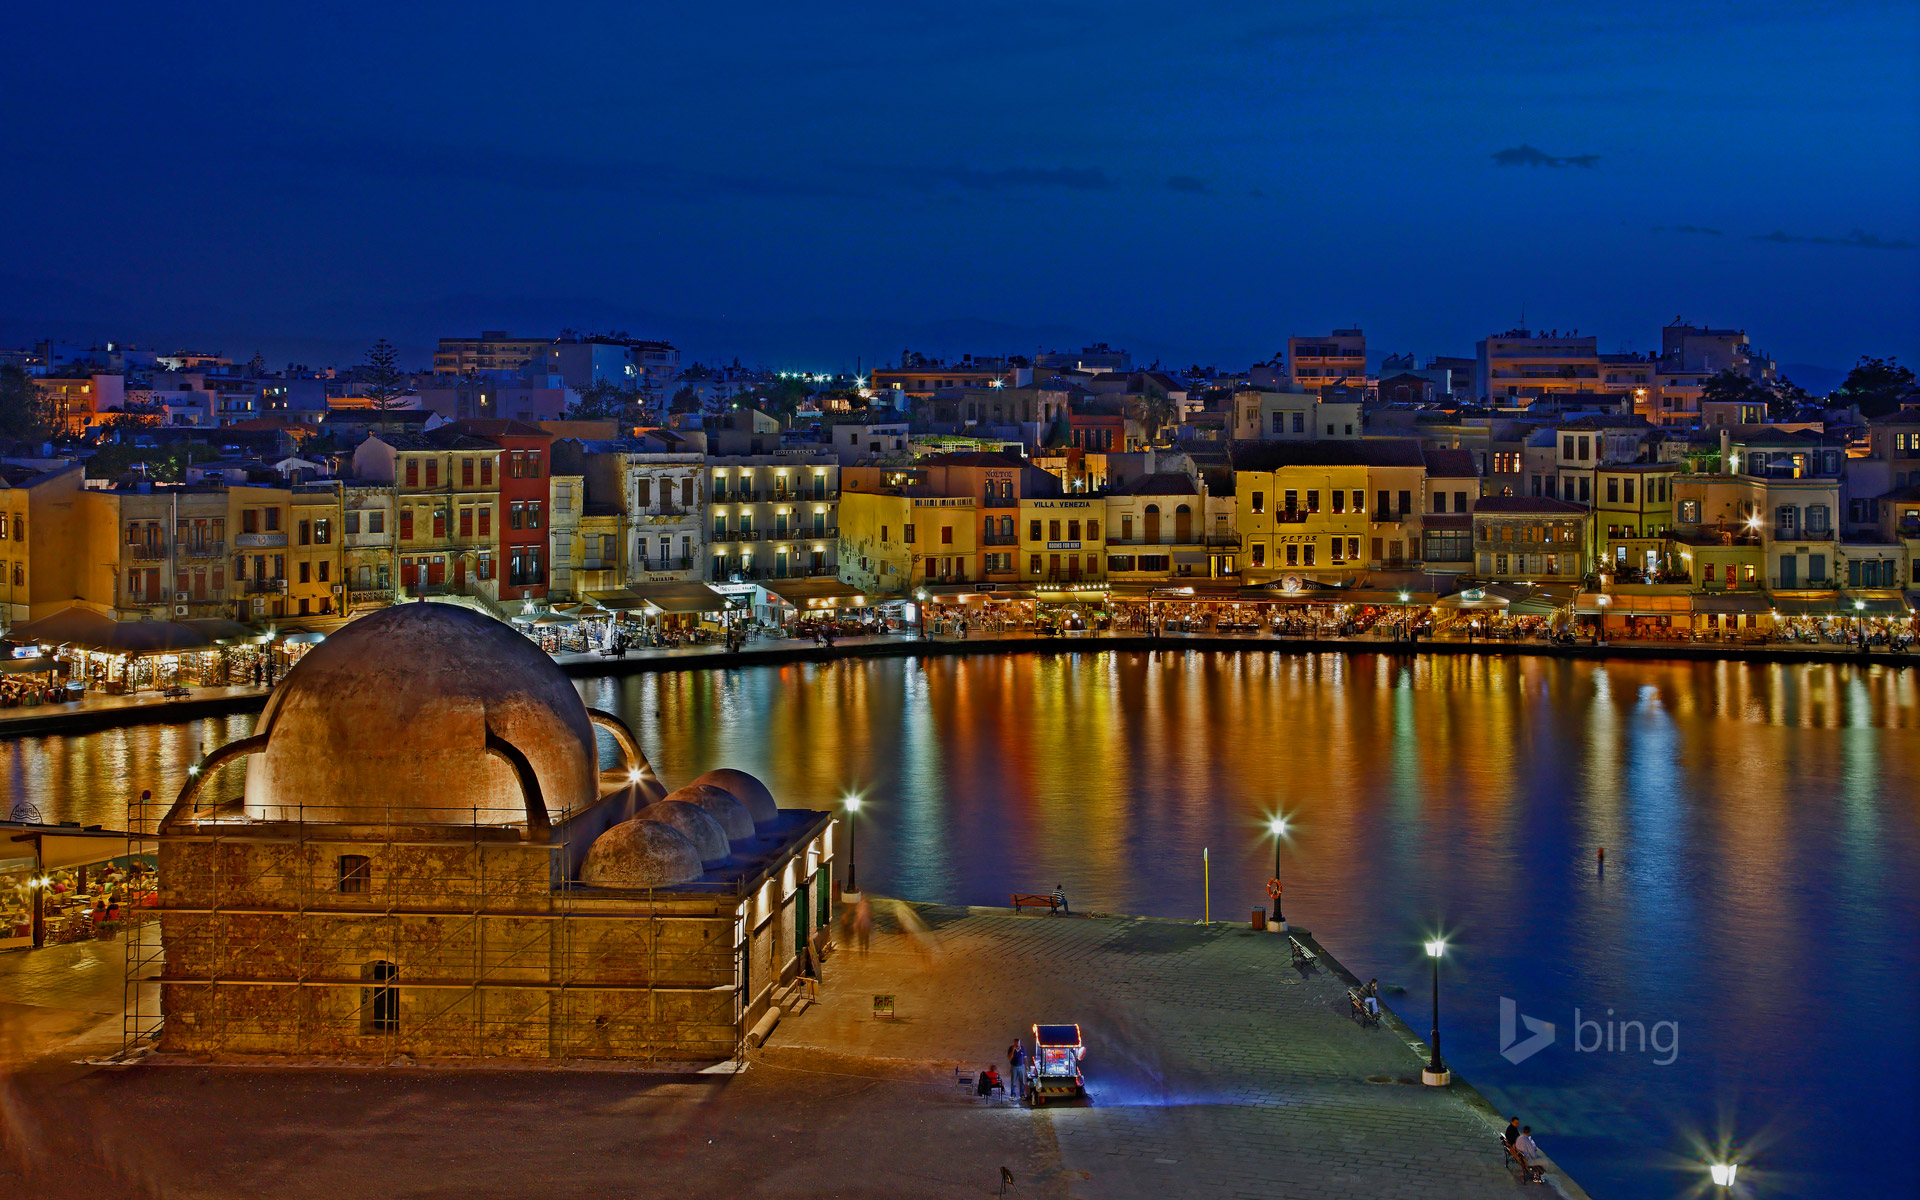 The Venetian Harbour and Old Town of Chania, Greece